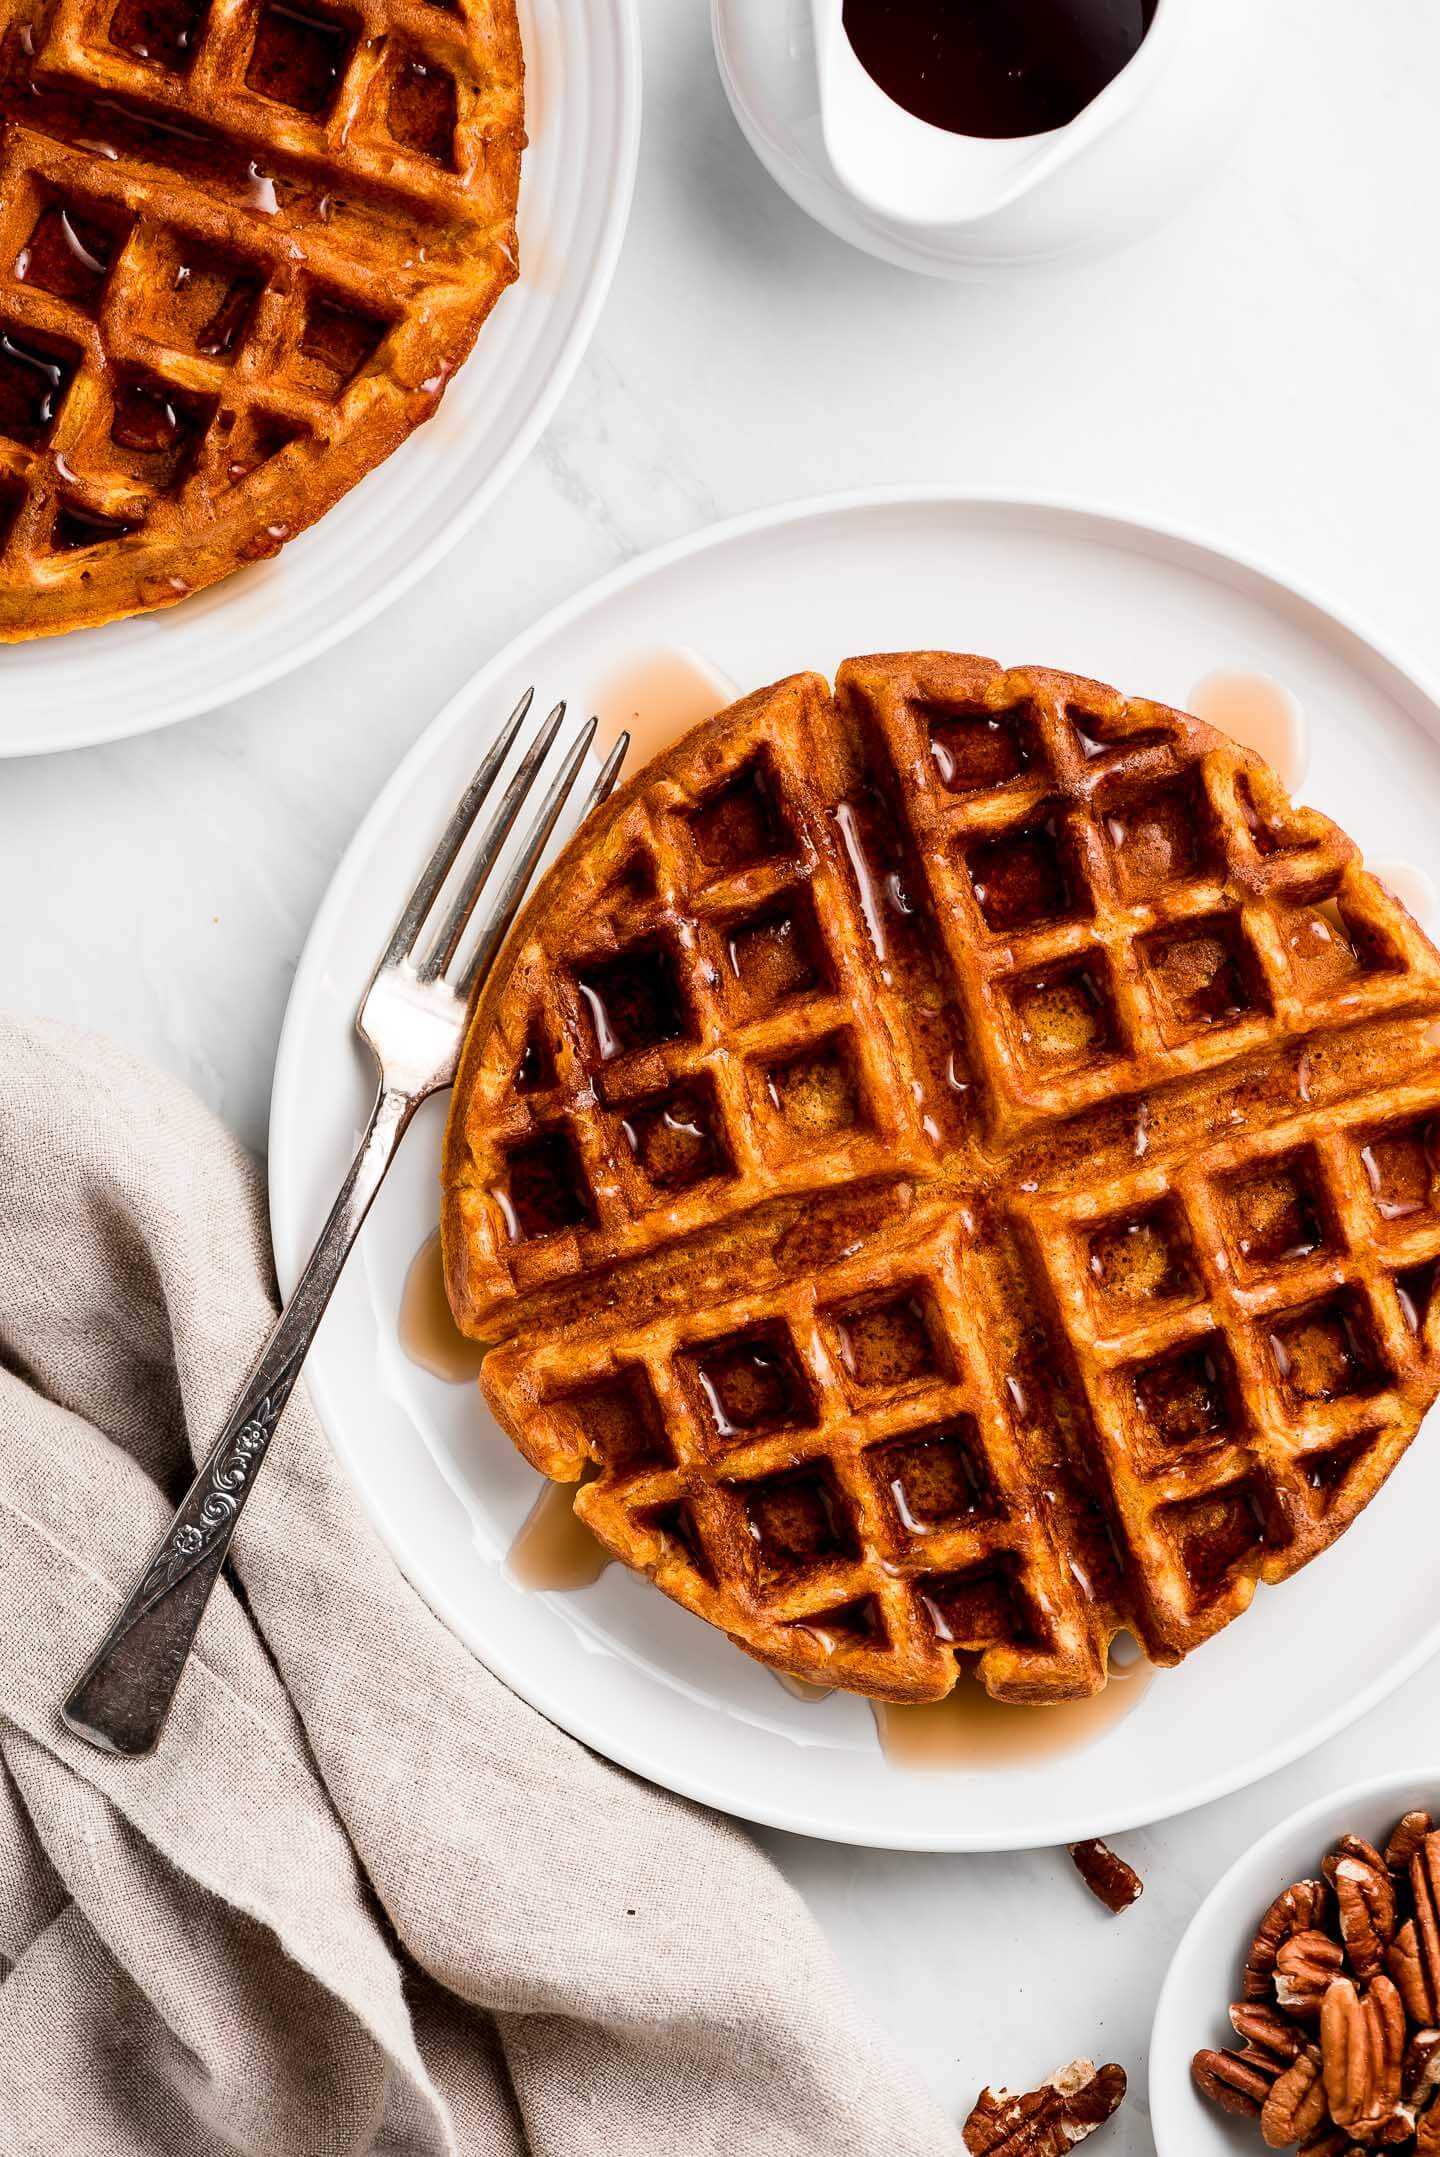 A simple pumpkin waffle on a plate with a fork and syrup drizzled over the top.